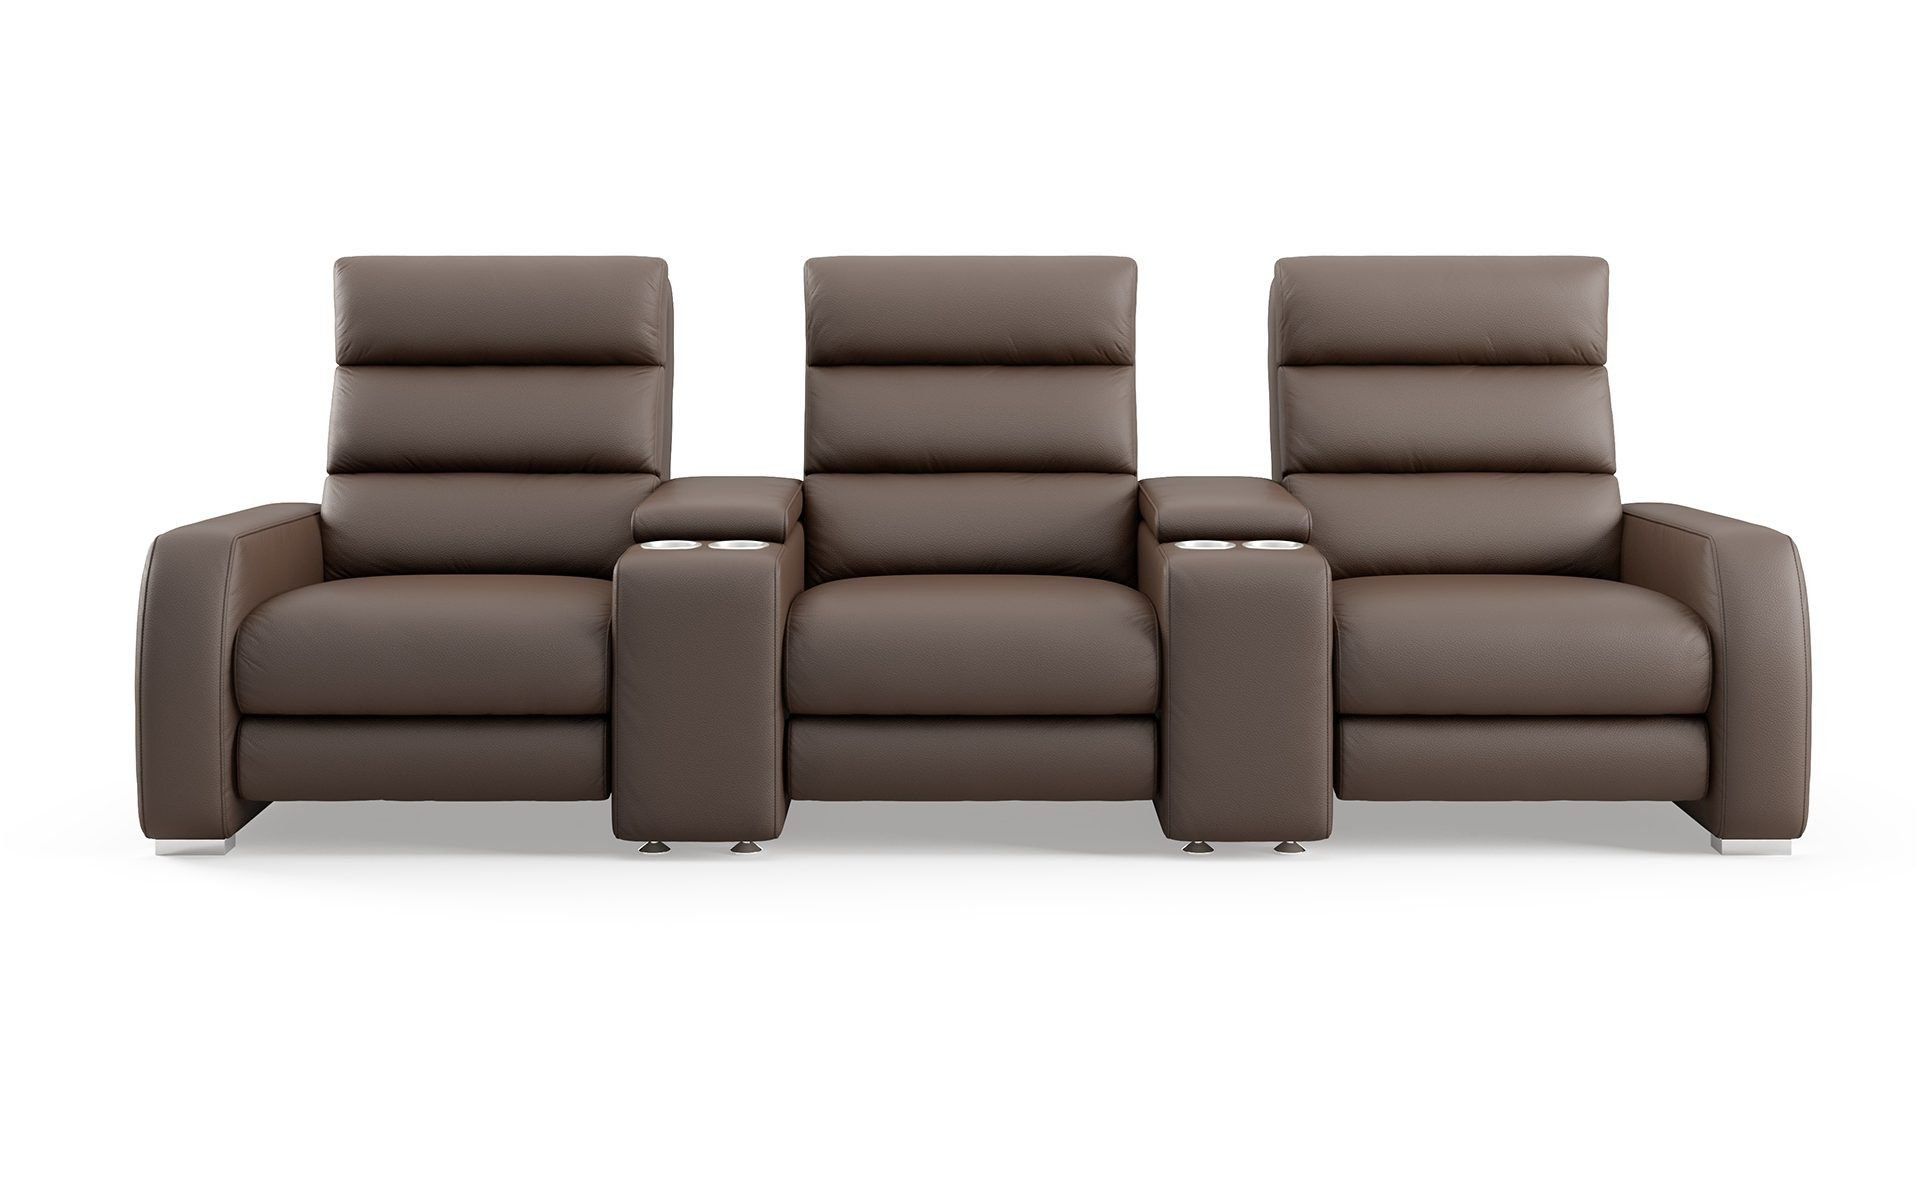 Angenehm Sofa Hohe Lehne Couch Möbel Sofa Couch Recliner